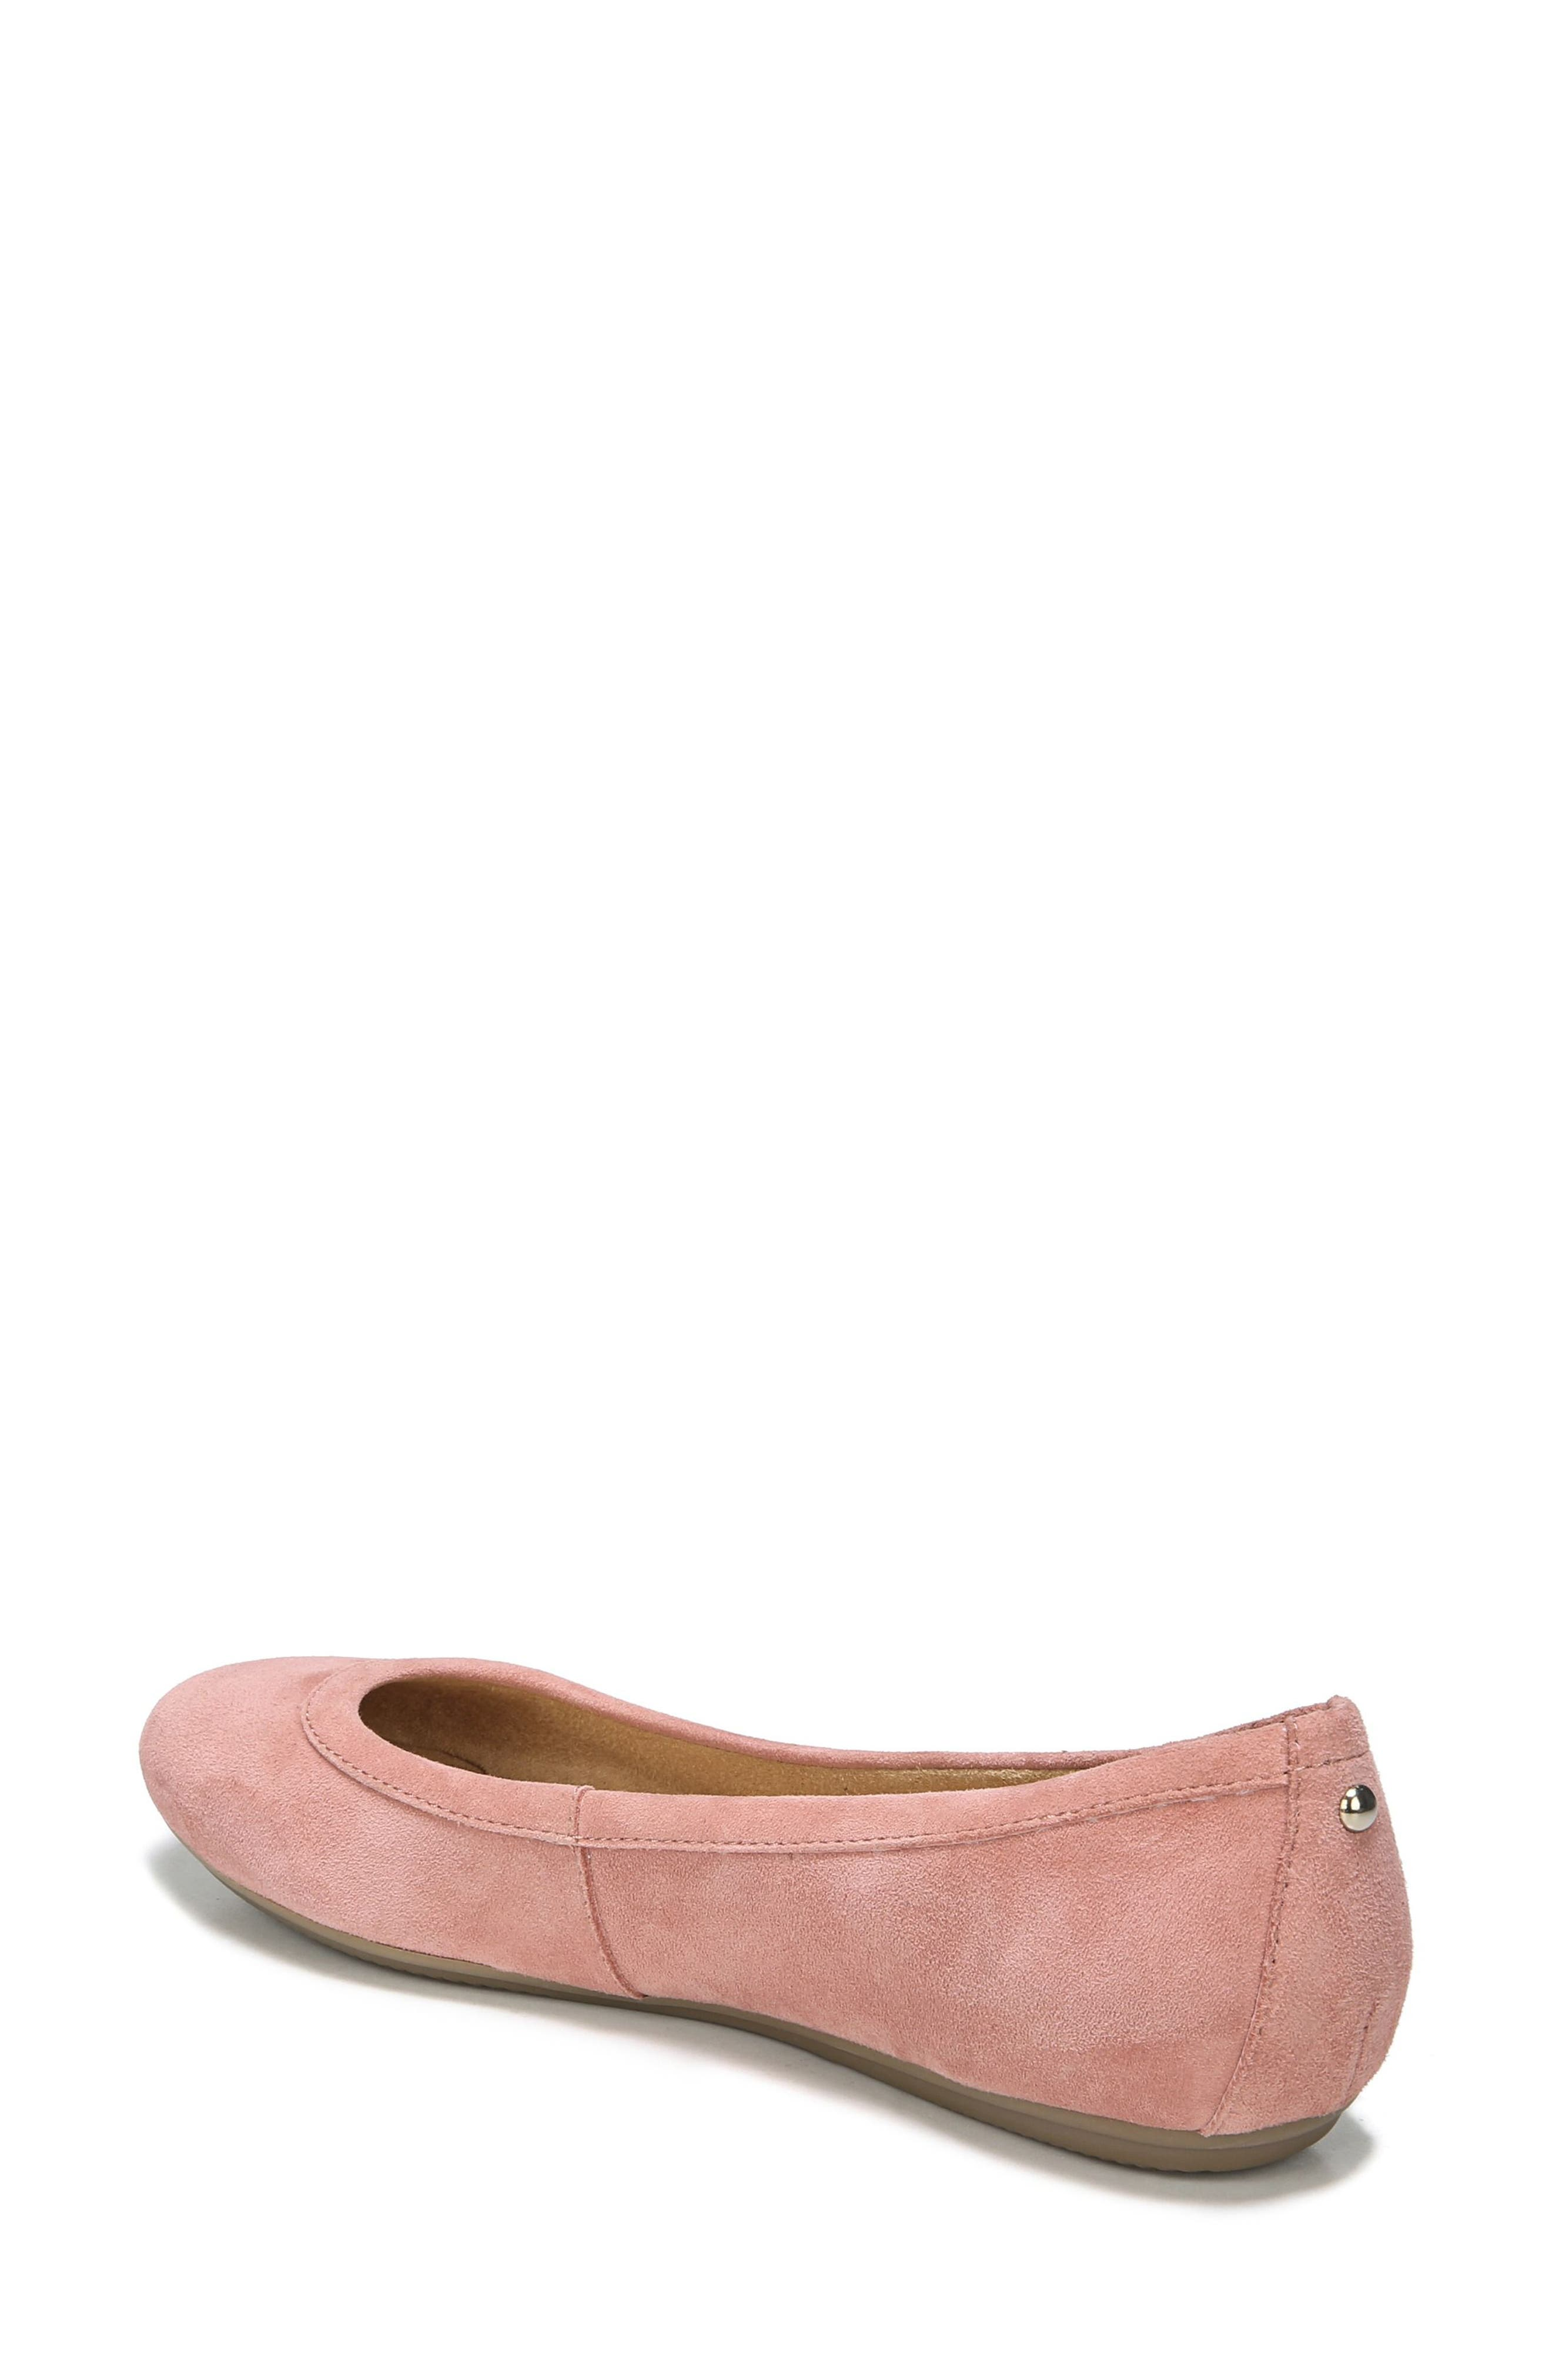 Brittany Ballet Flat,                             Alternate thumbnail 2, color,                             PEONY PINK SUEDE